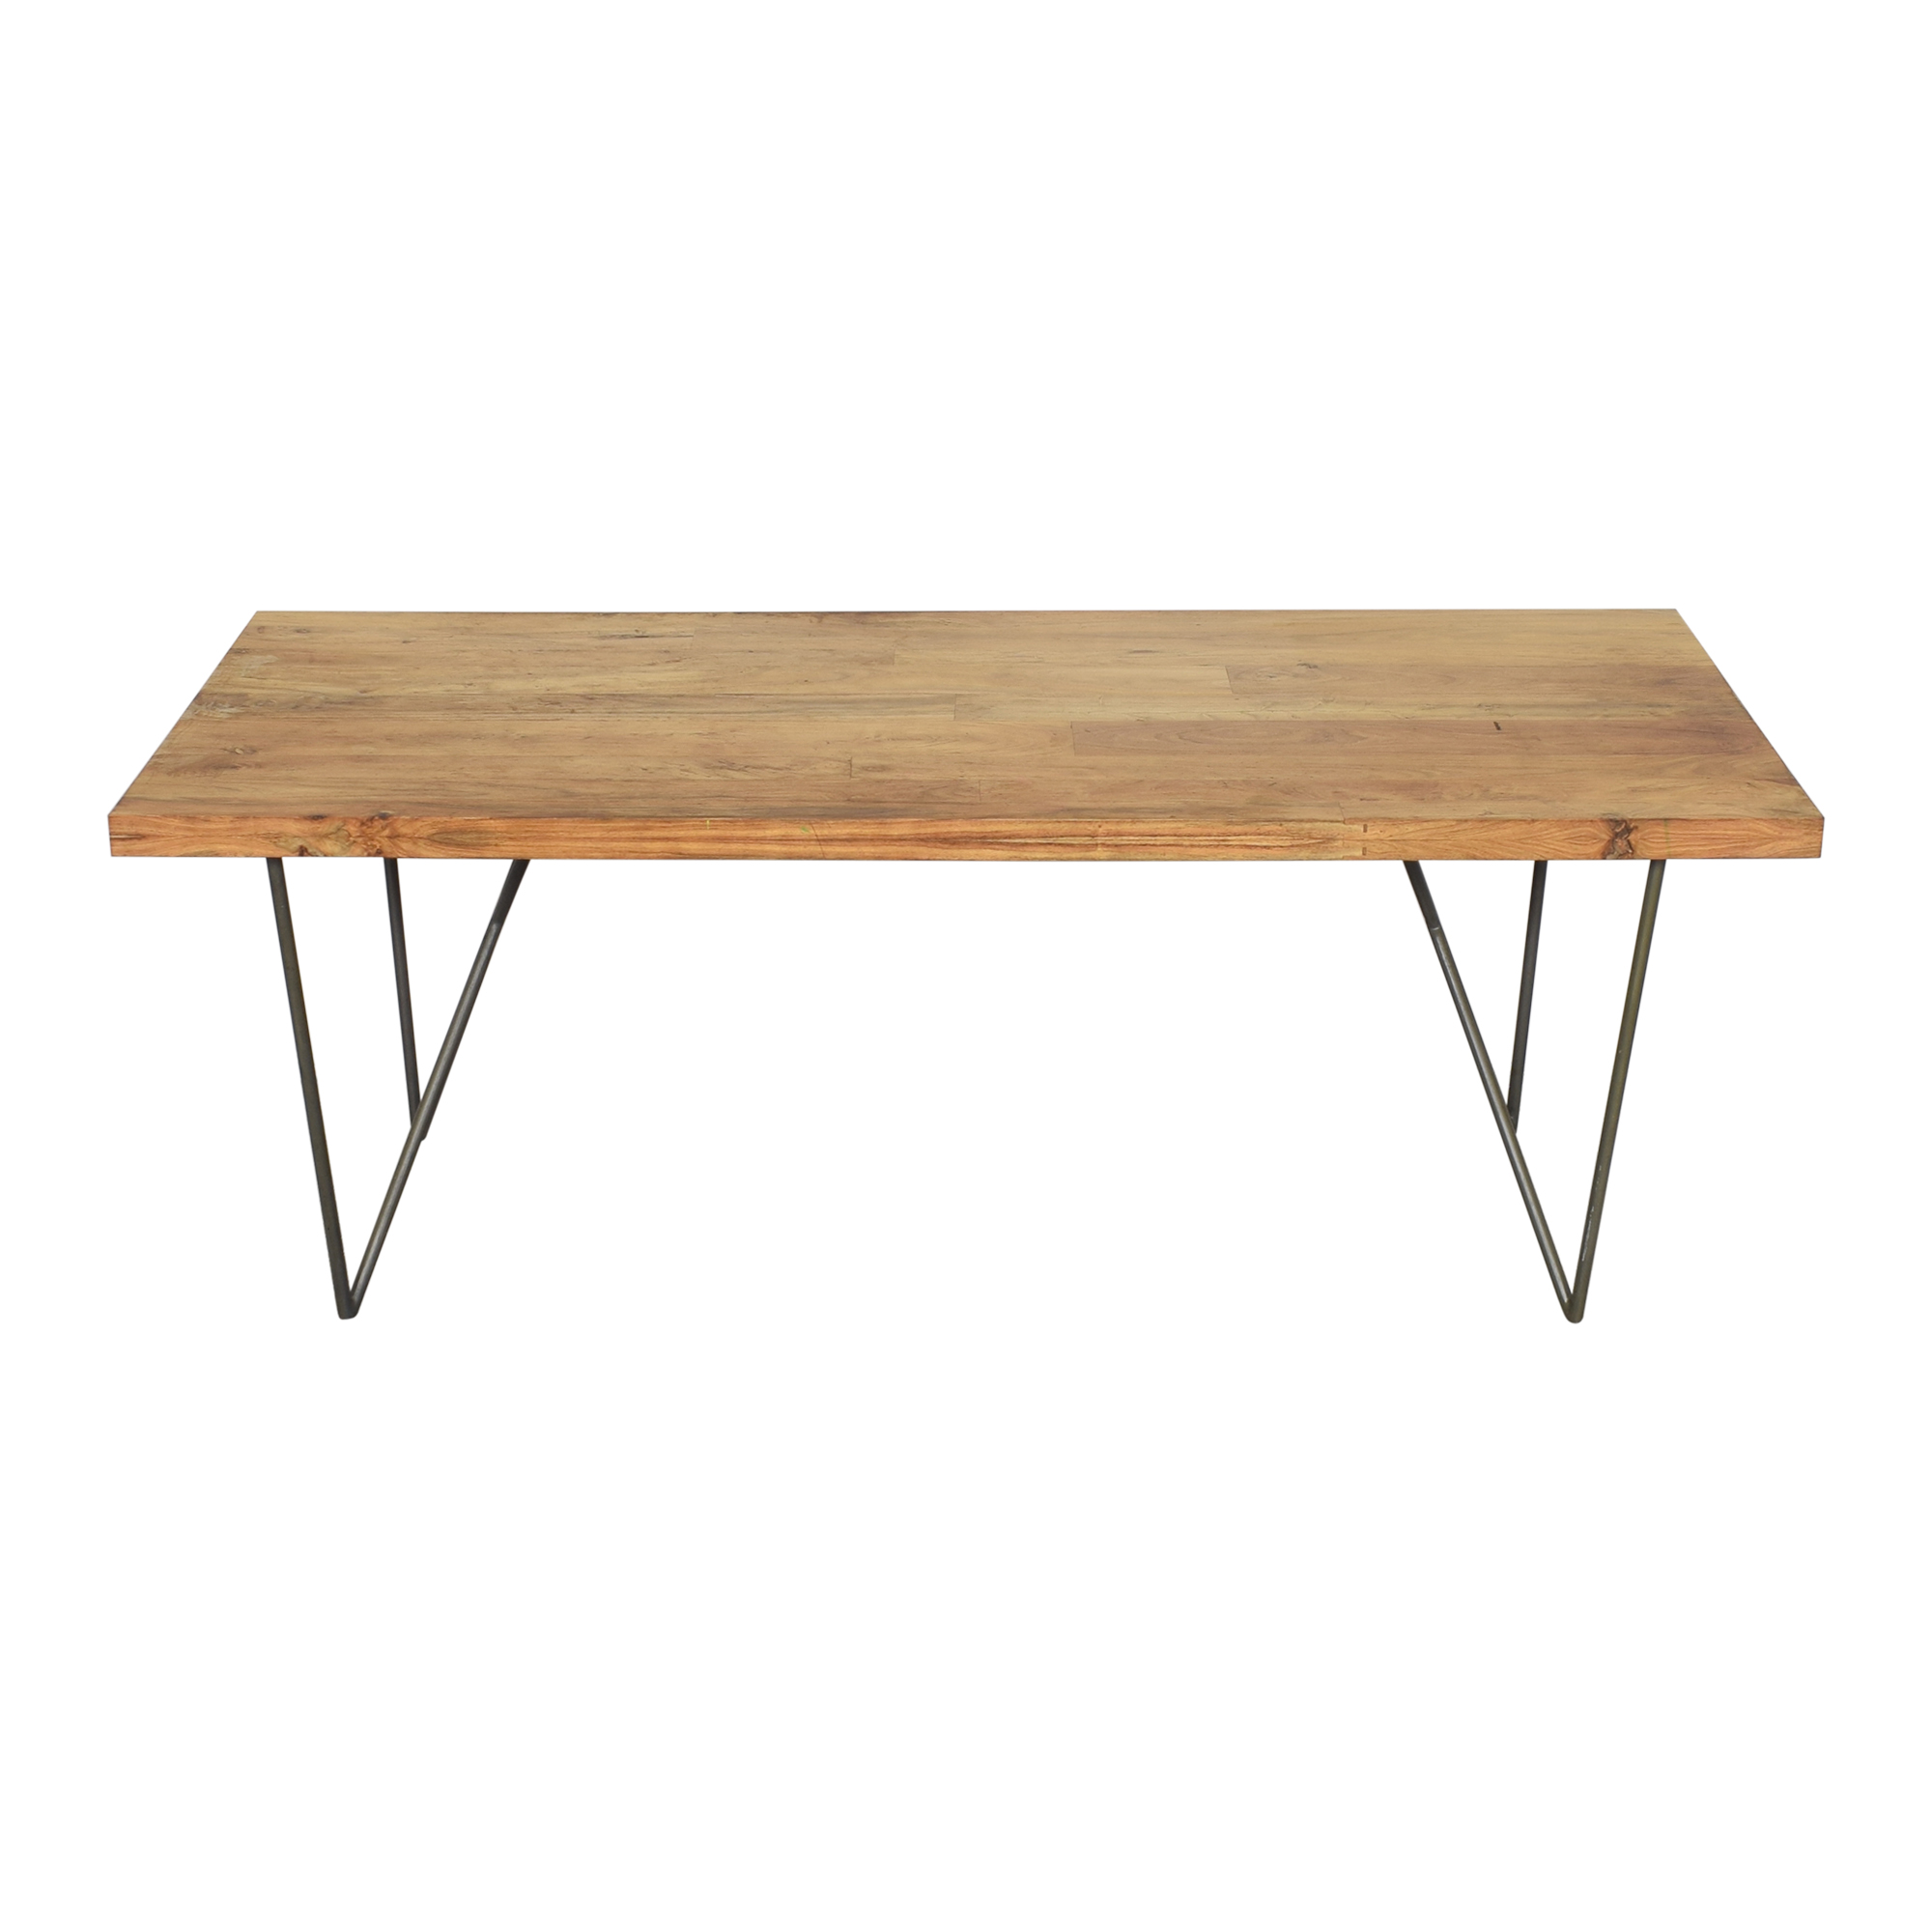 CB2 CB2 Dylan Dining Table ct